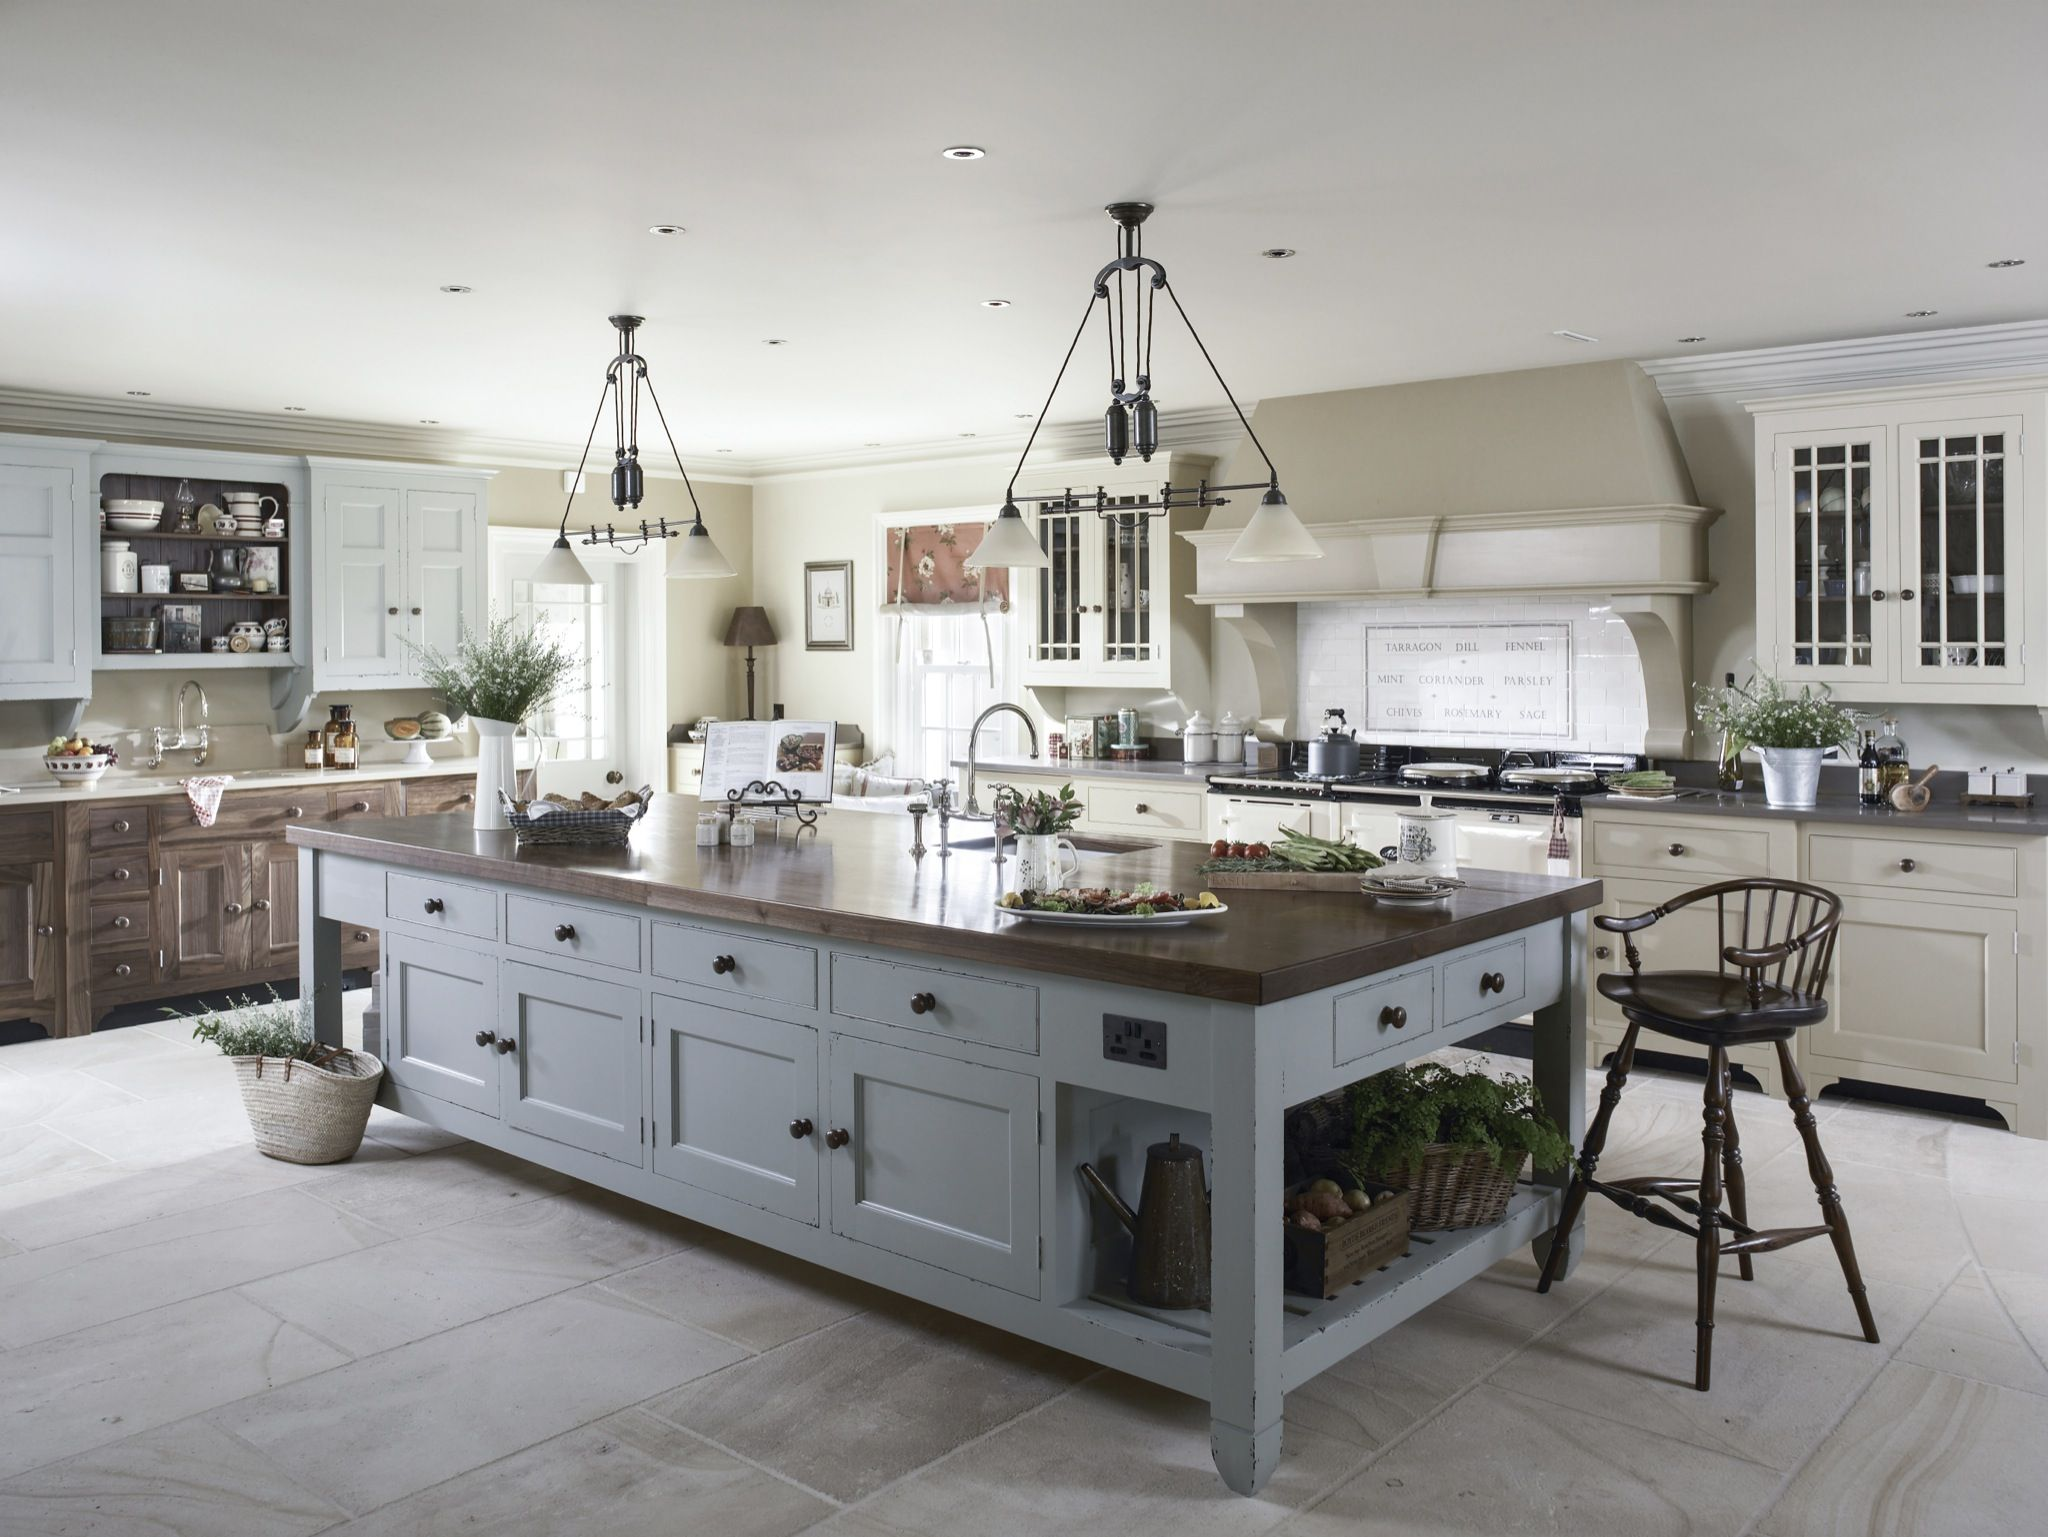 Country House  Ireland  Hayburn & Co  Kitchen  Pinterest Enchanting In Home Kitchen Design Review